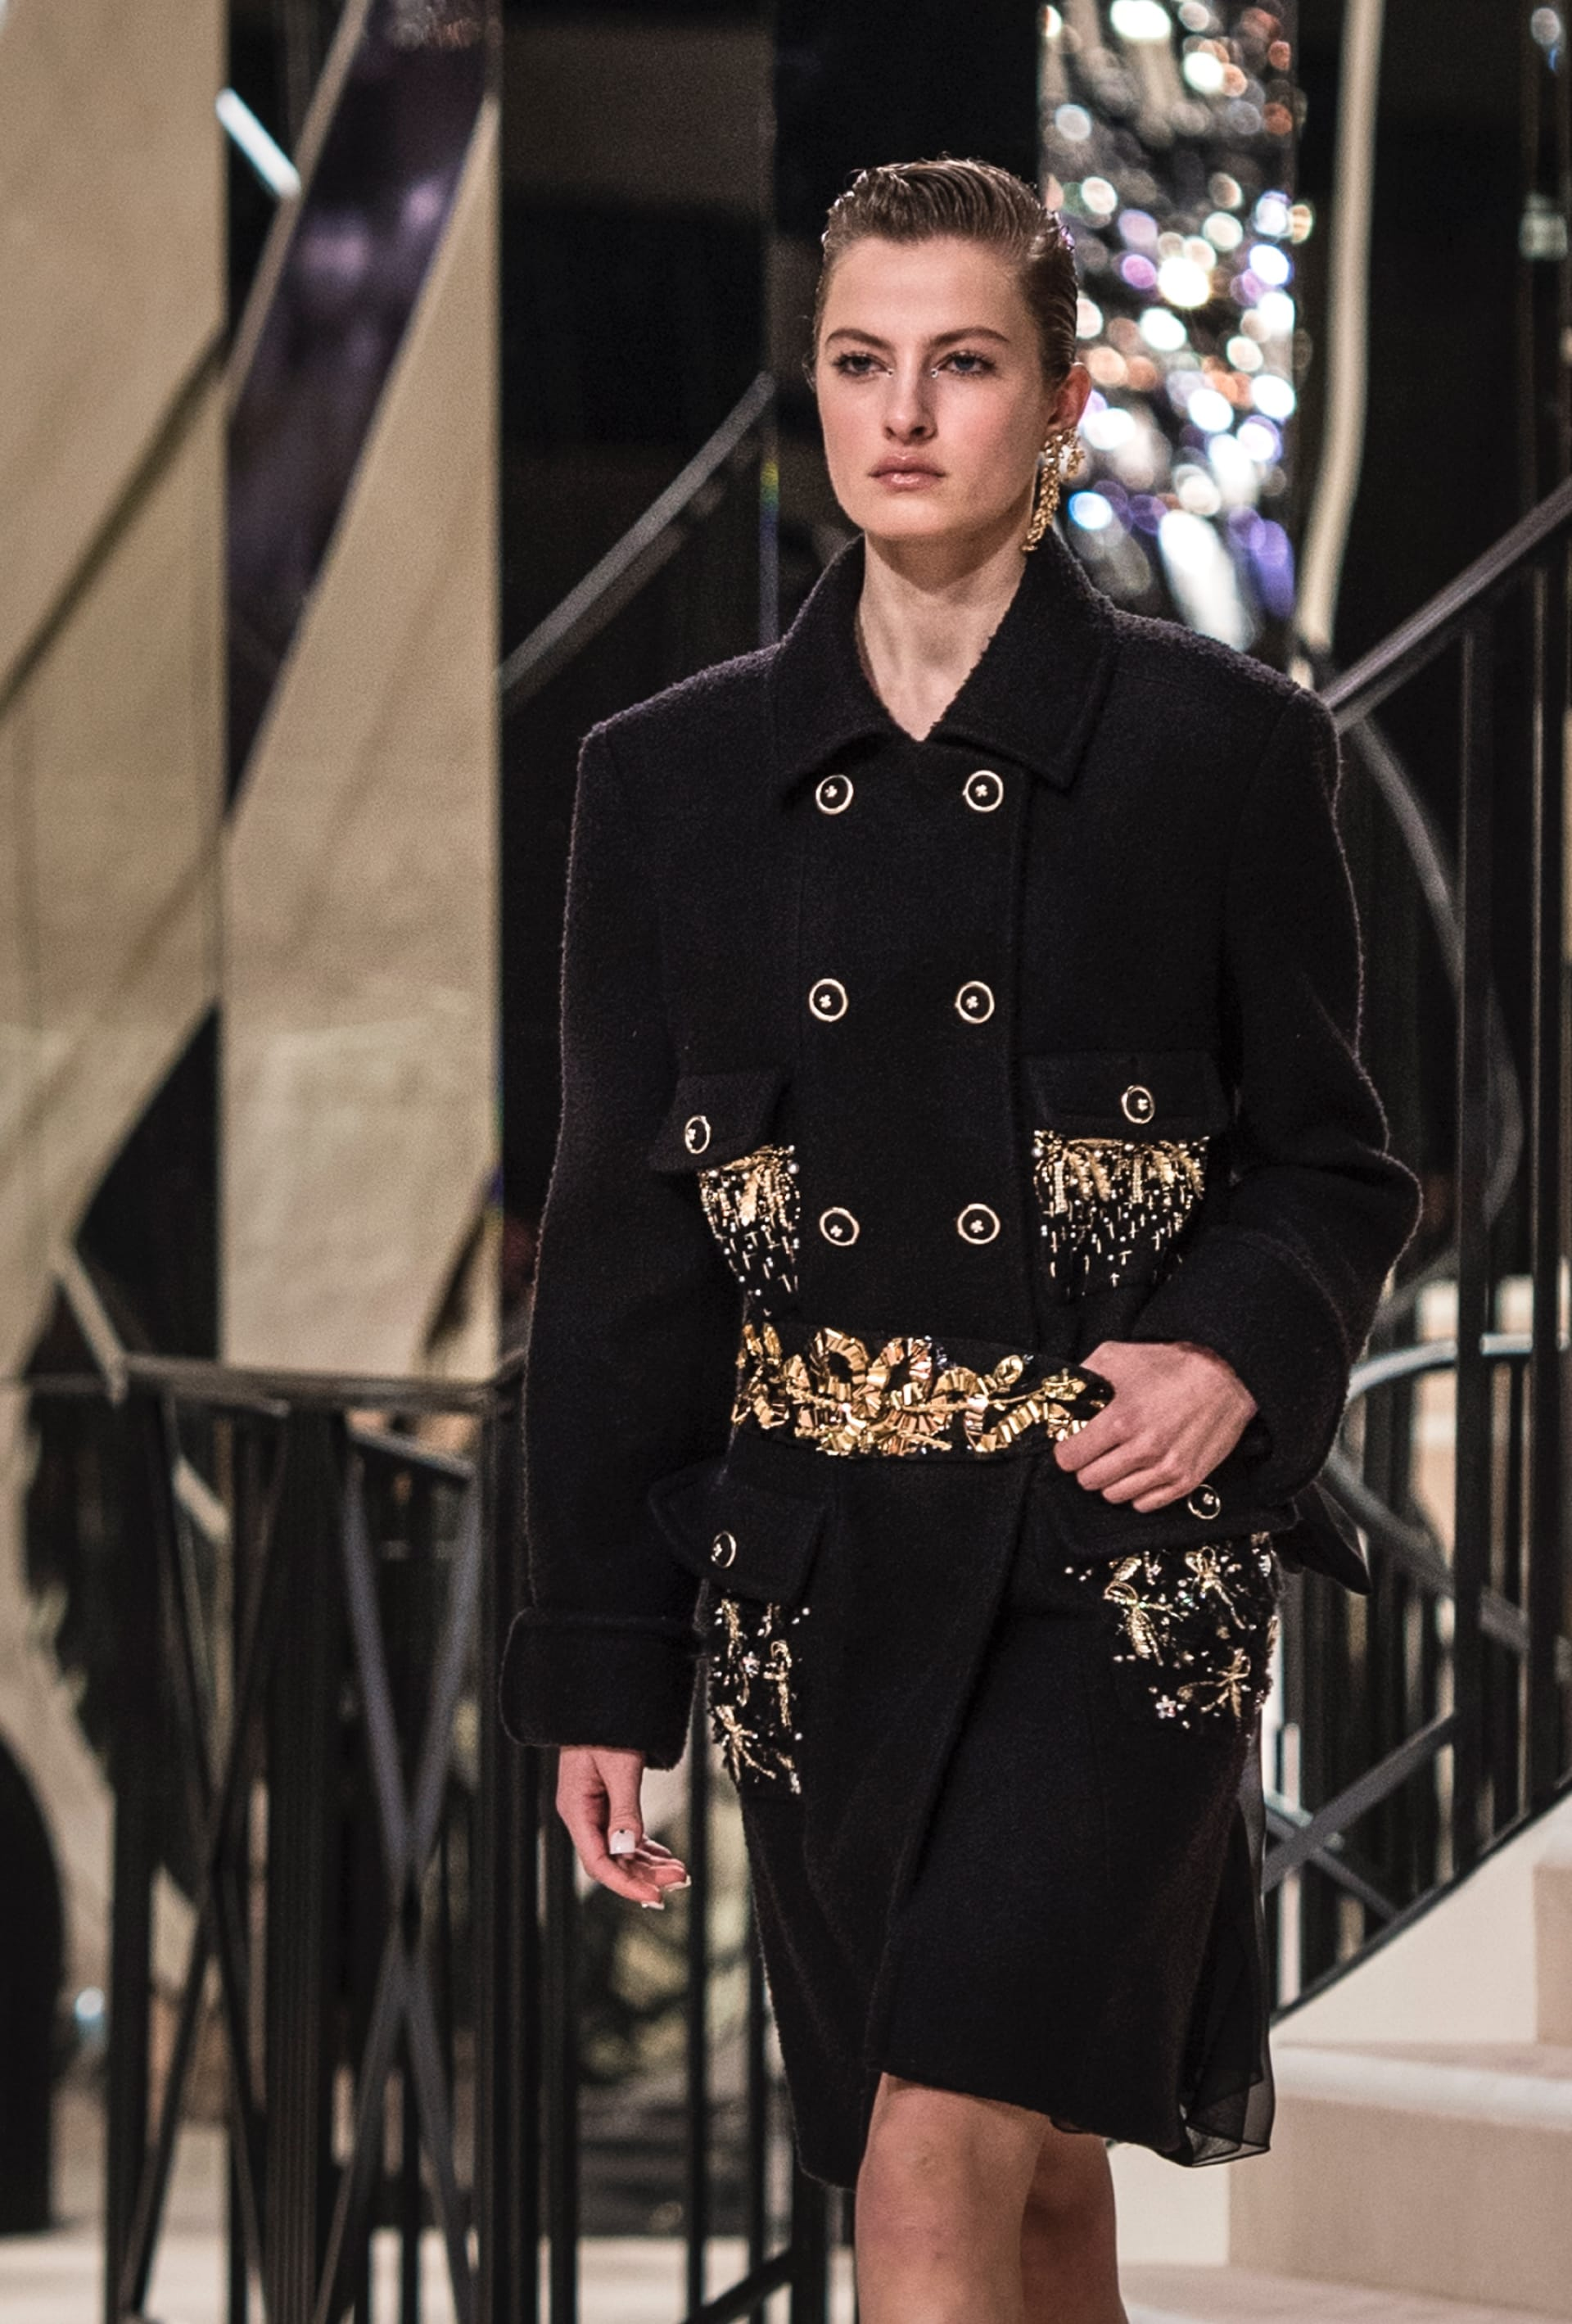 Additional image 4 - Look  4 -  - Métiers d'Art 2019/20